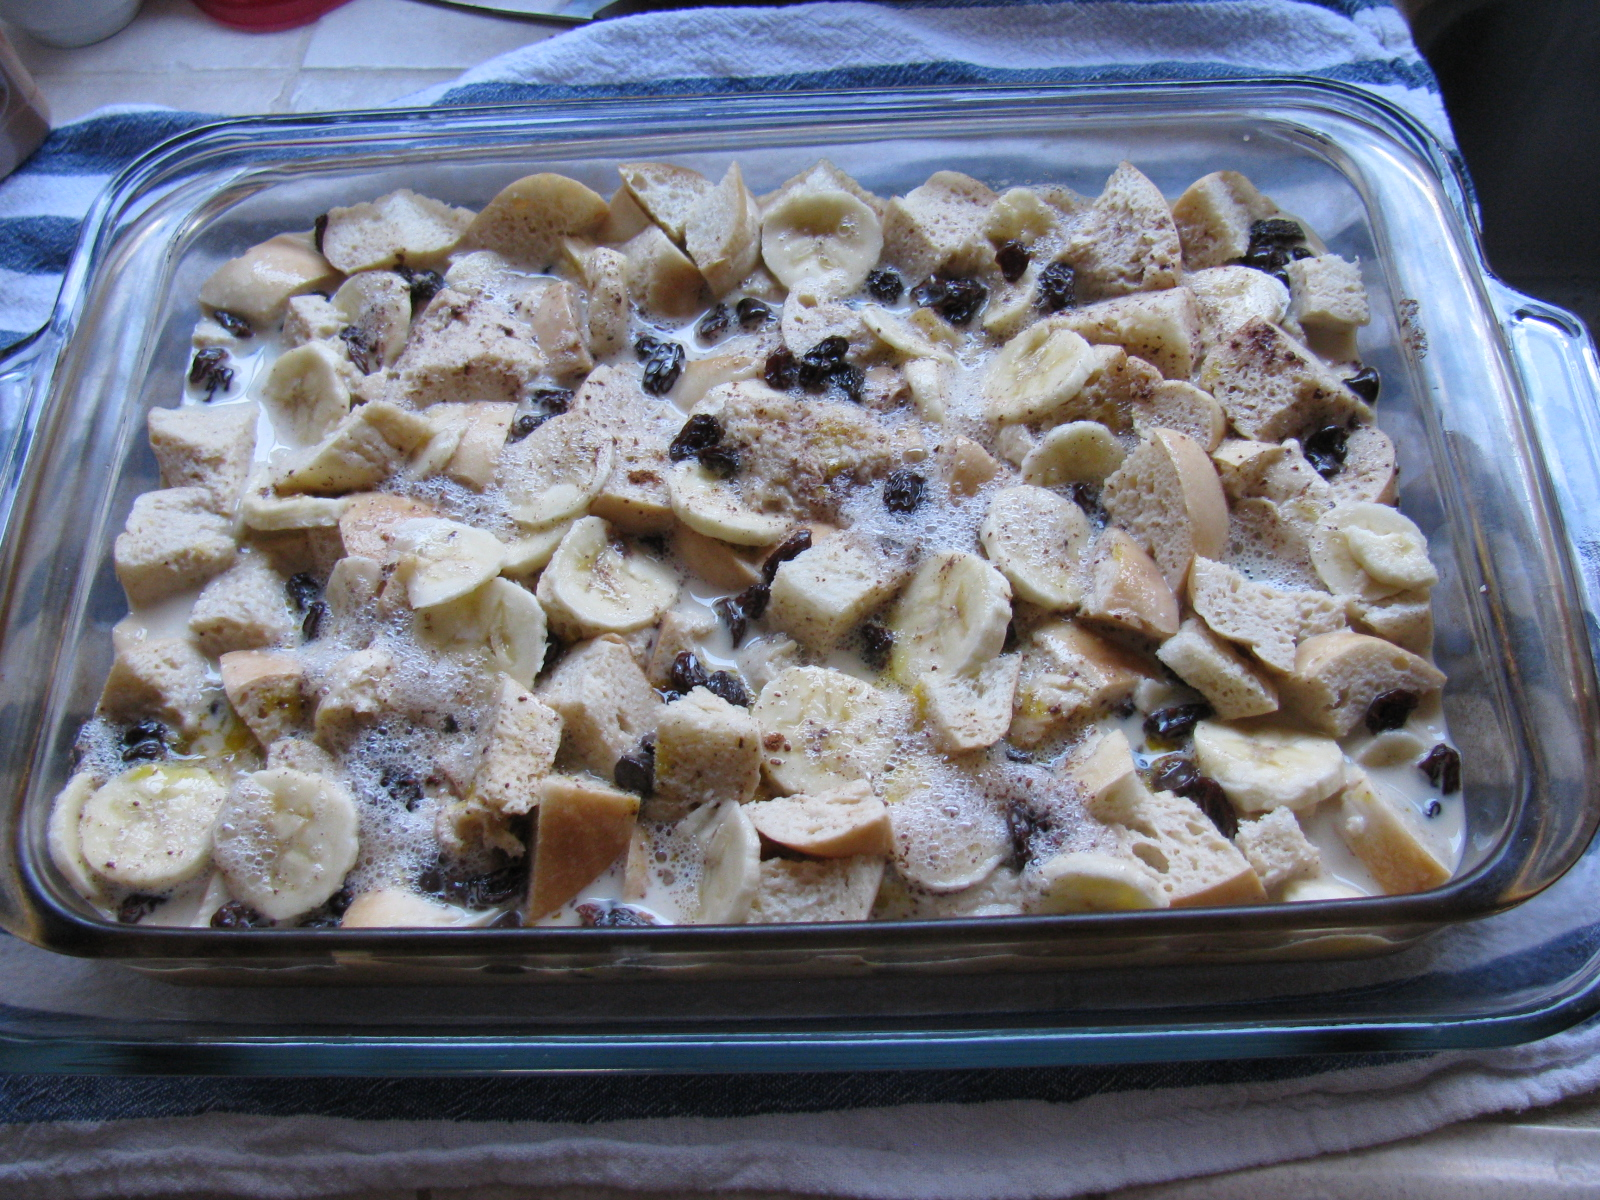 Kh6wz Bread Pudding With Bananas Raisins And Chocolate Chips Ready For The Oven